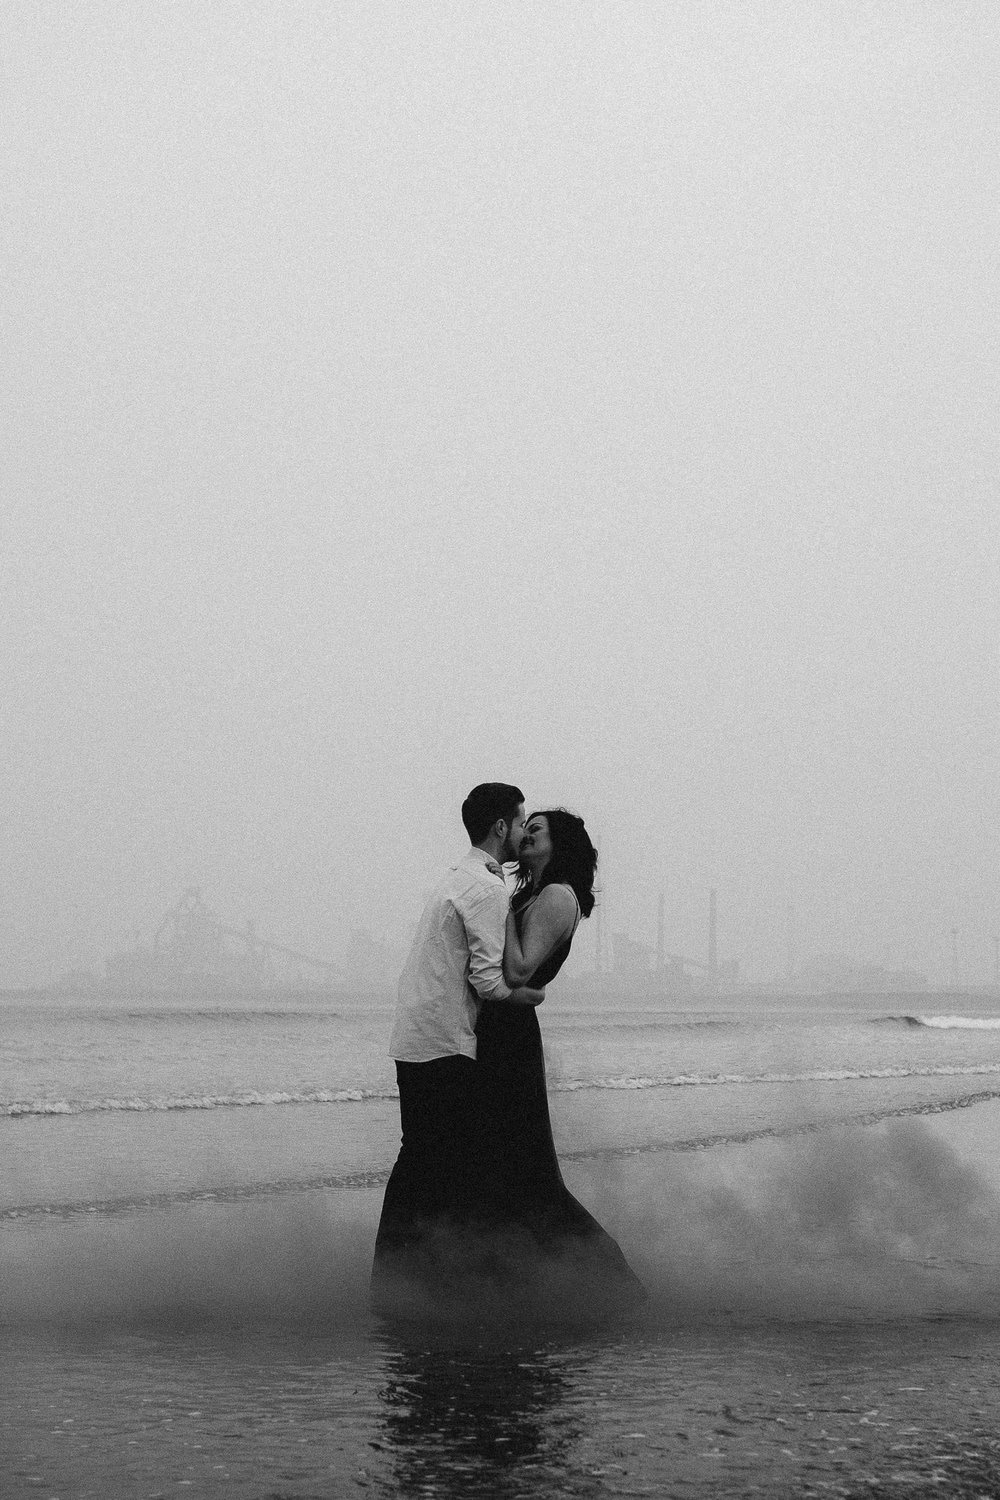 Couple hold each other tight in sexy black and white photo on the beach